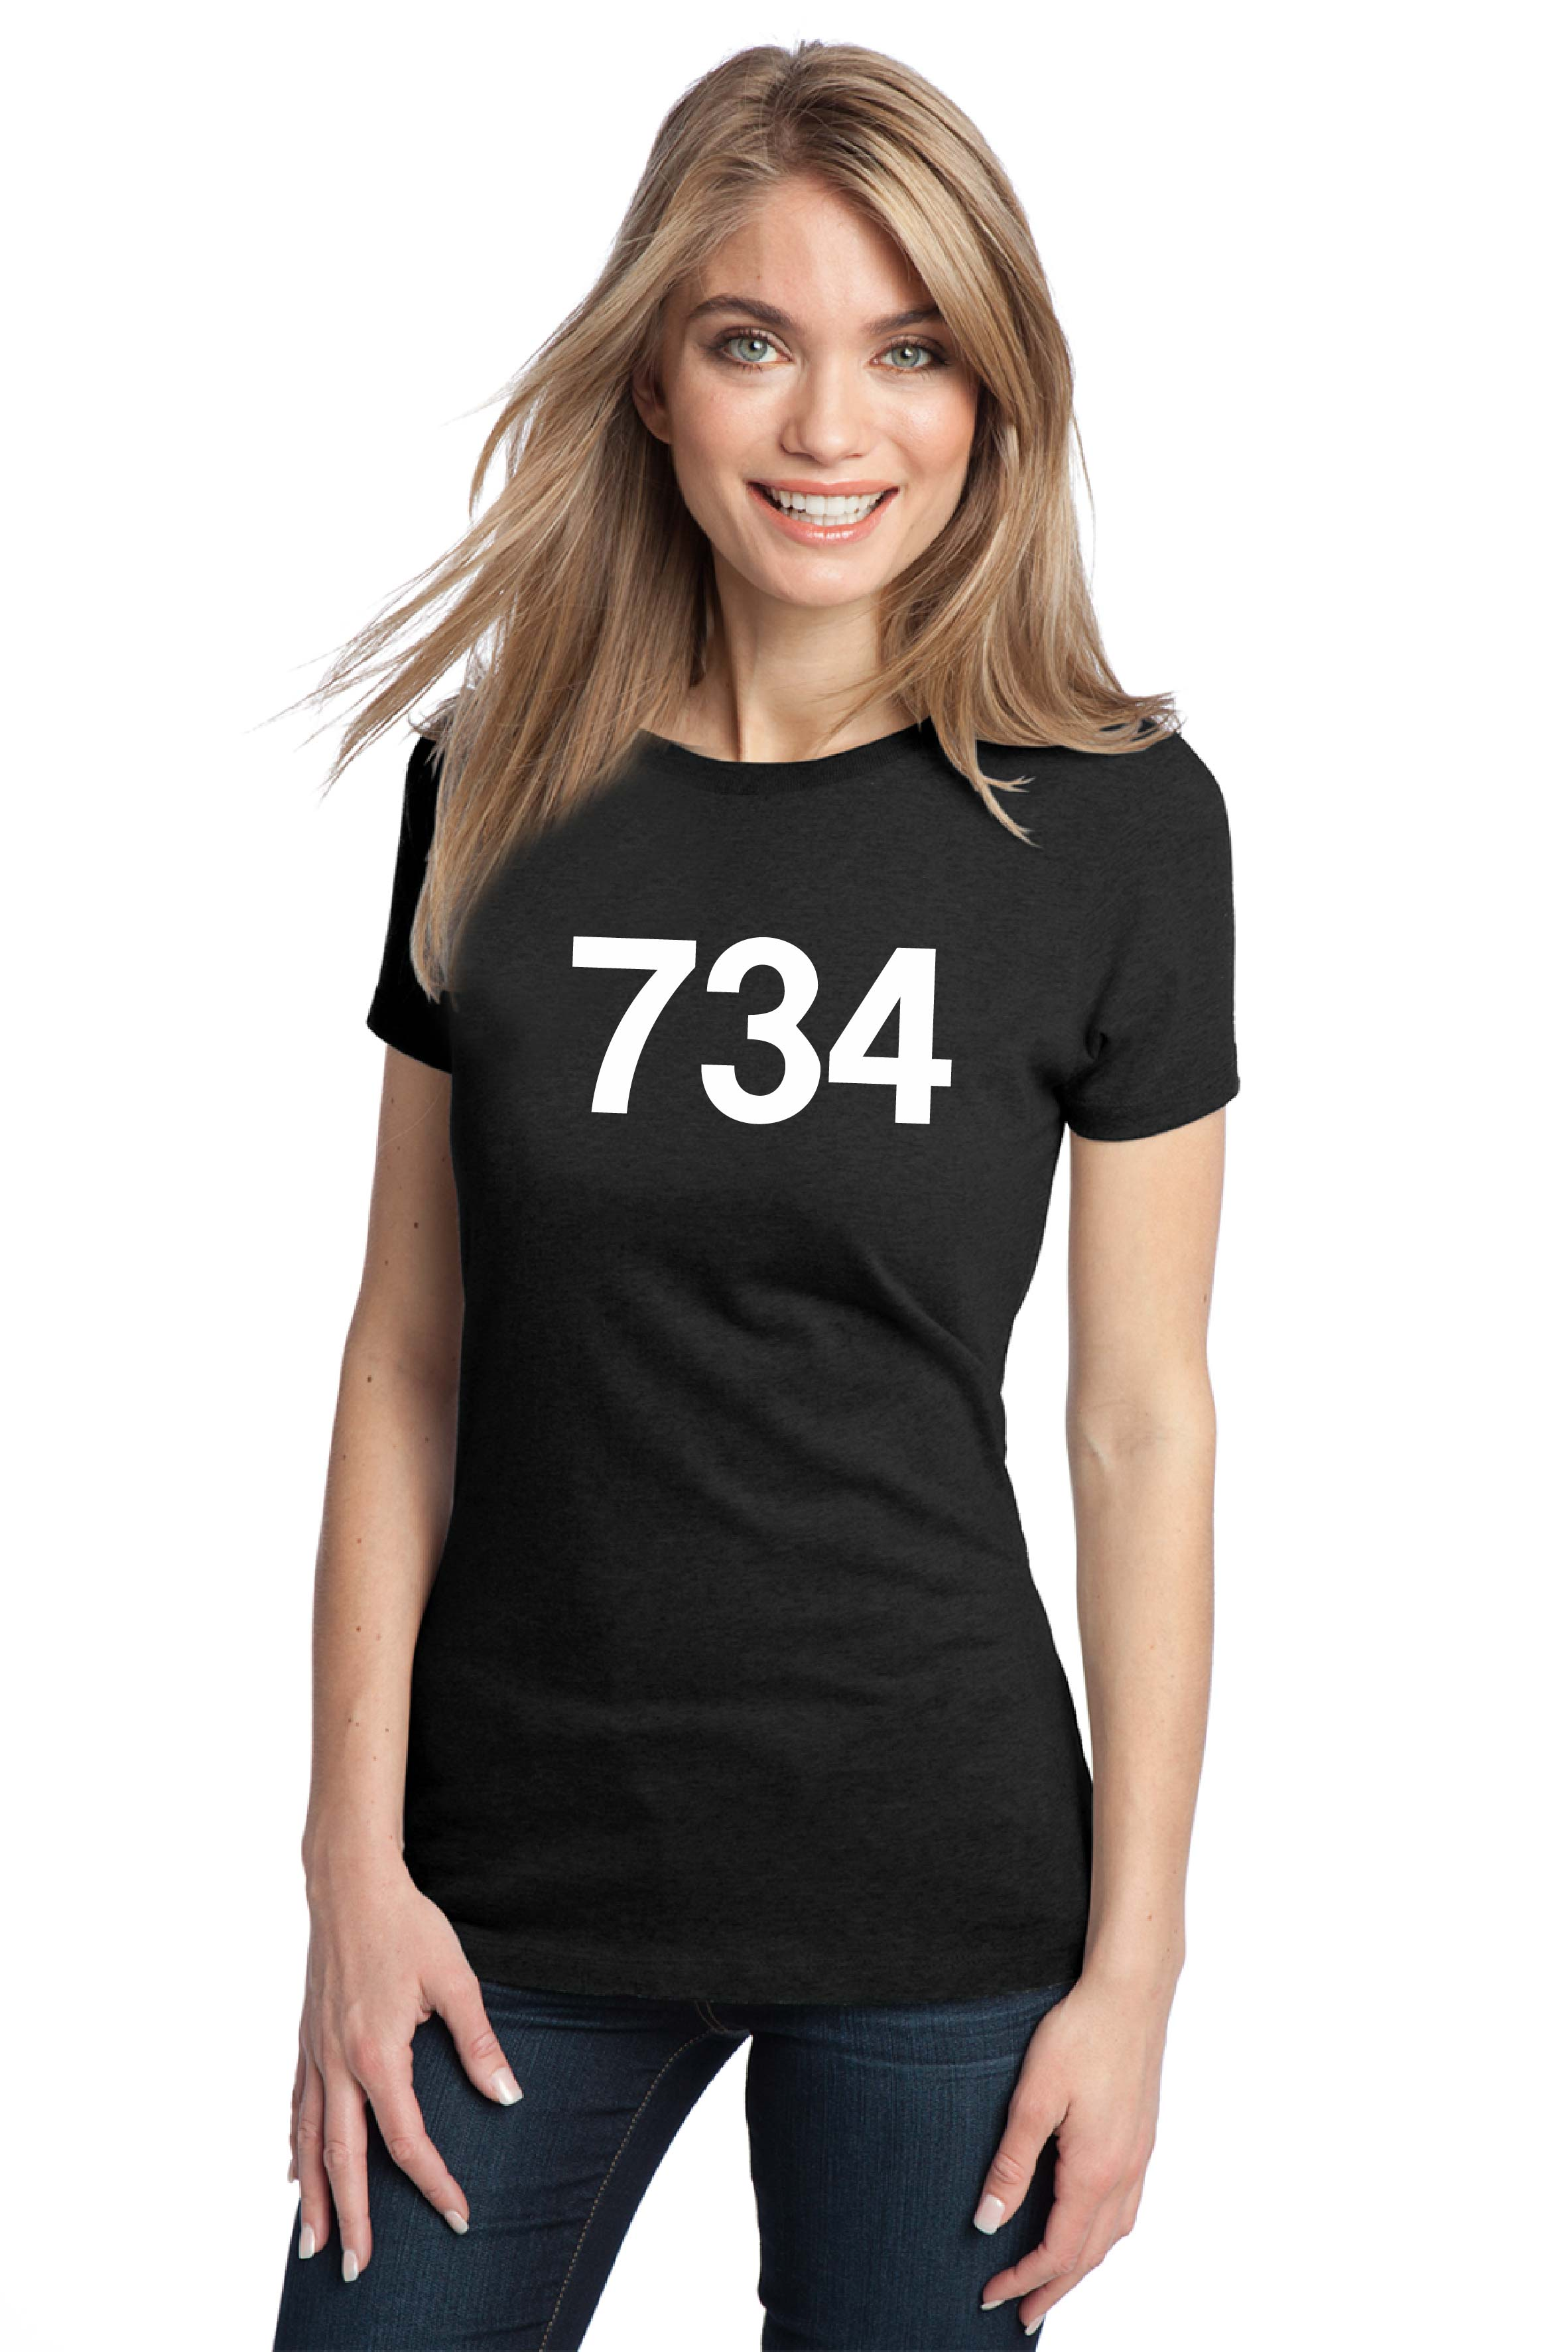 I have no idea why she is wearing a shirt that say 734 but hey, who is to  argue.